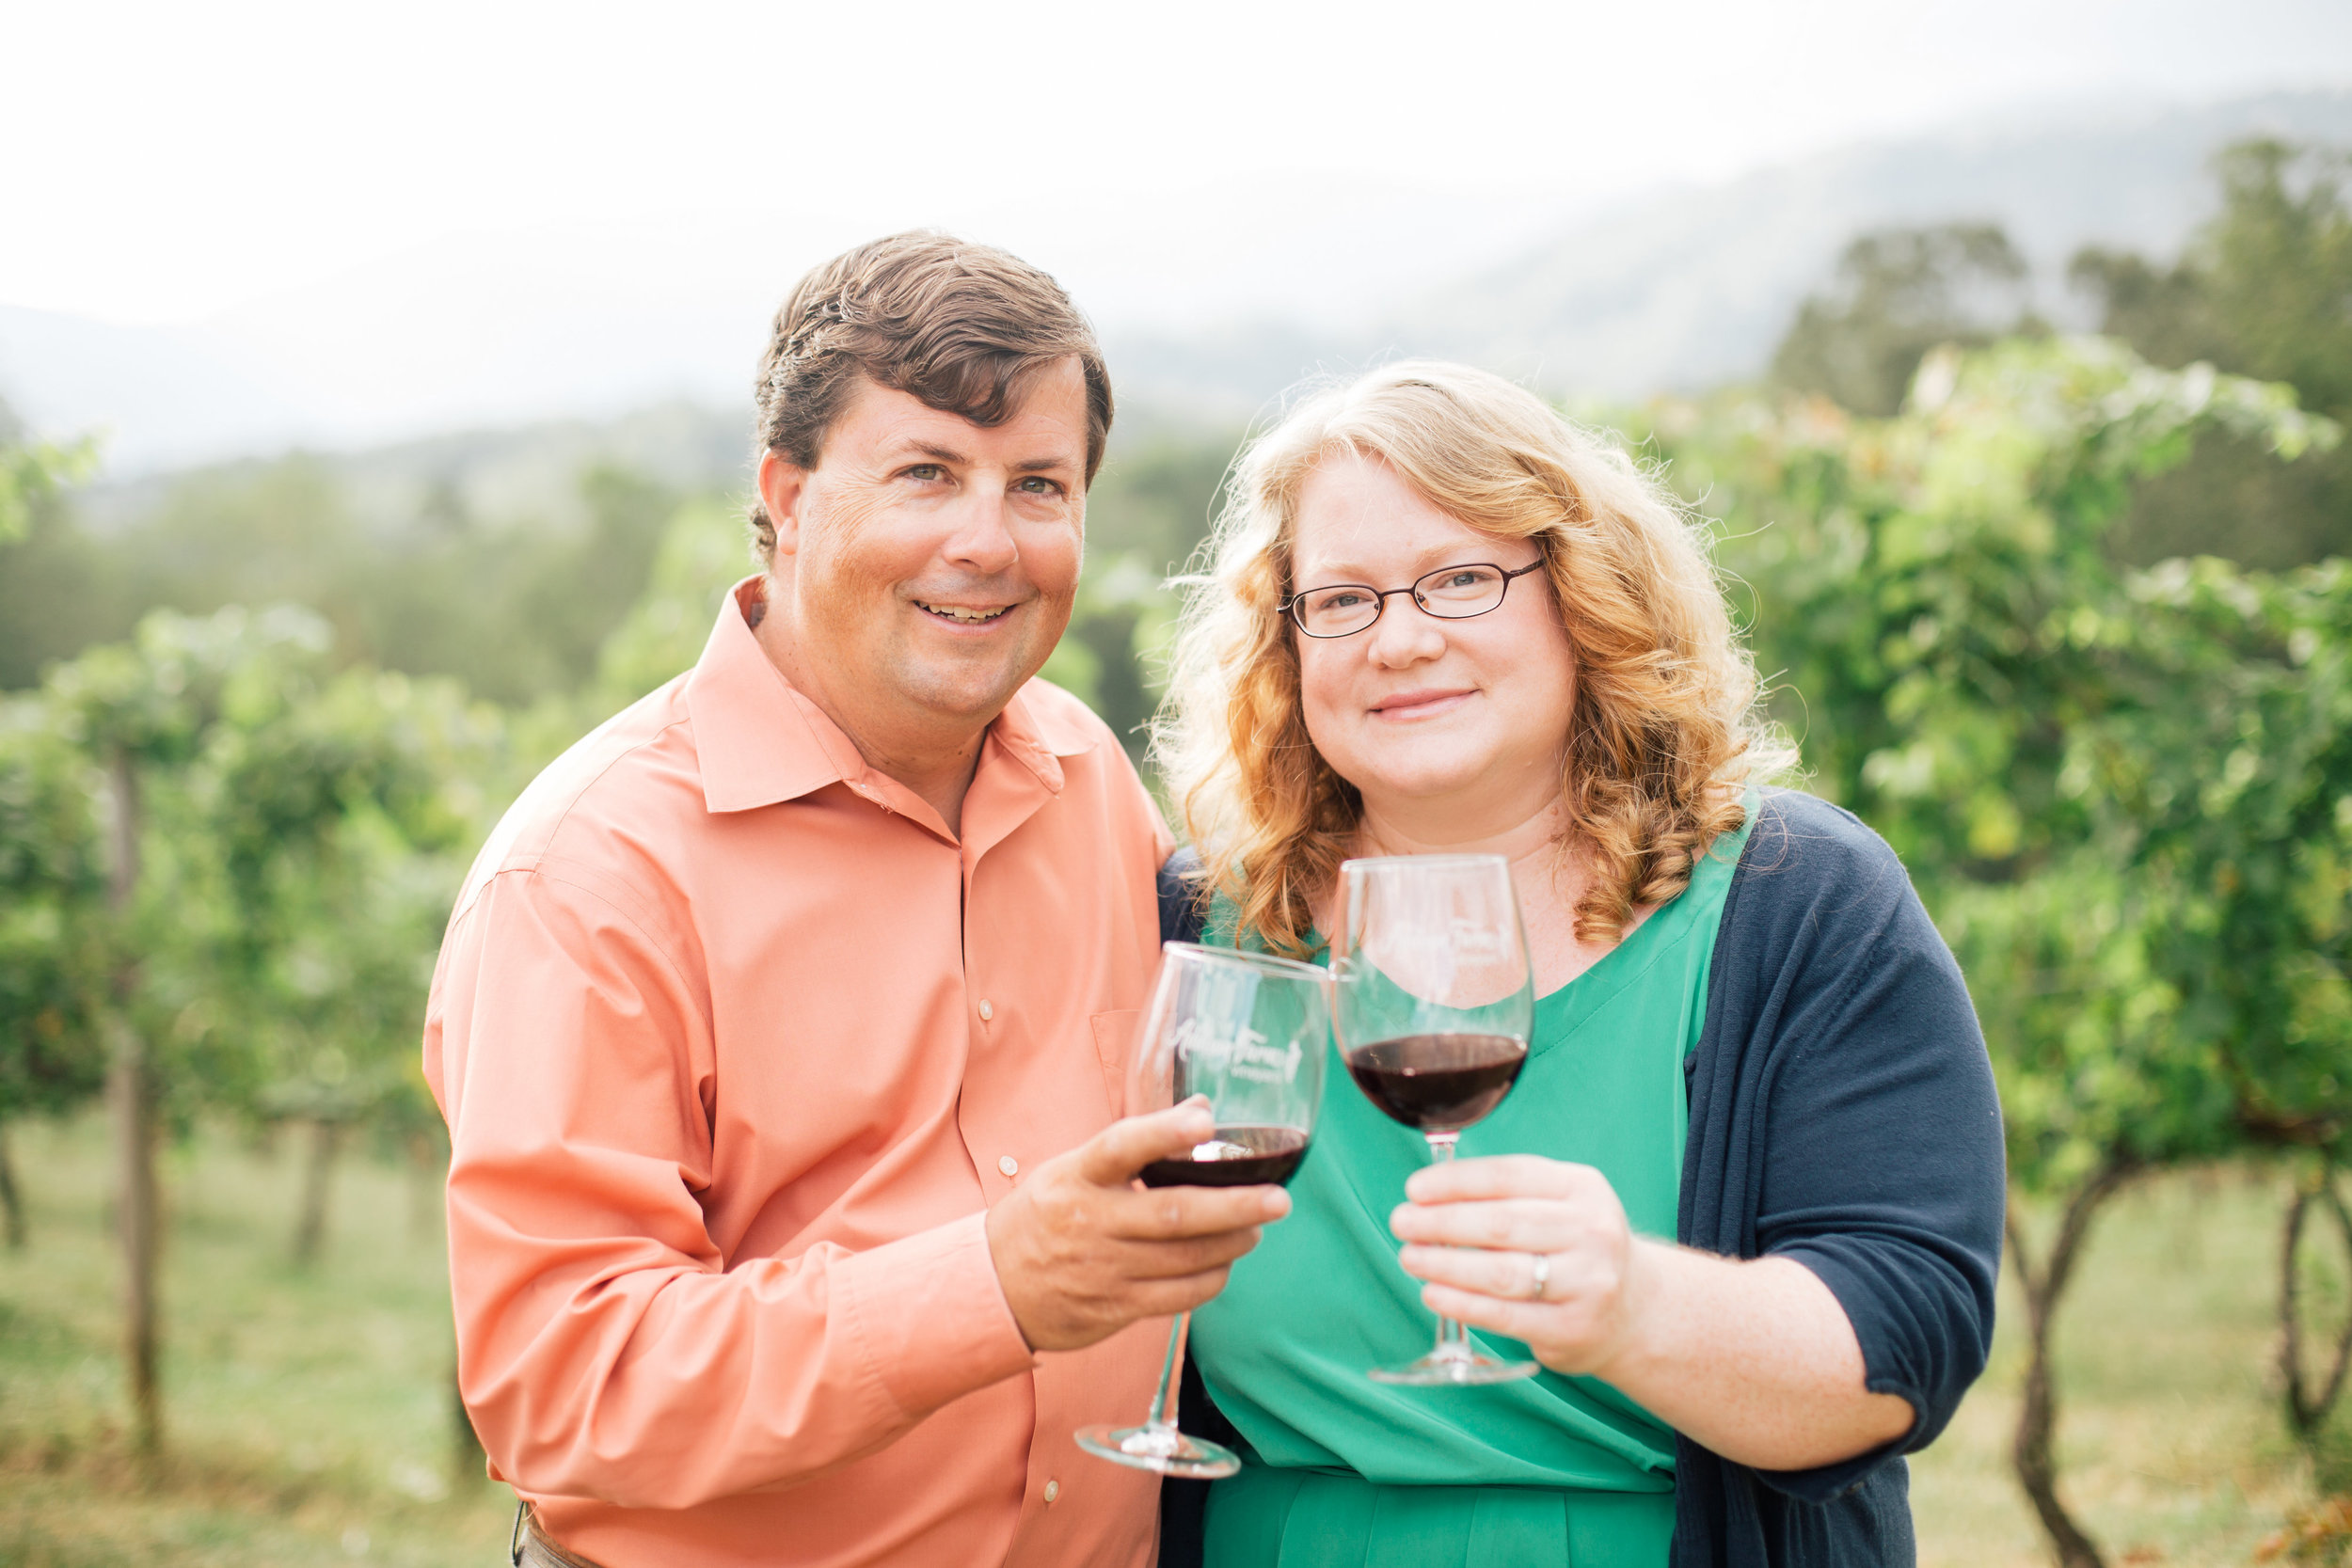 Winemaker, Jeff Frisbee with his wife Dianne